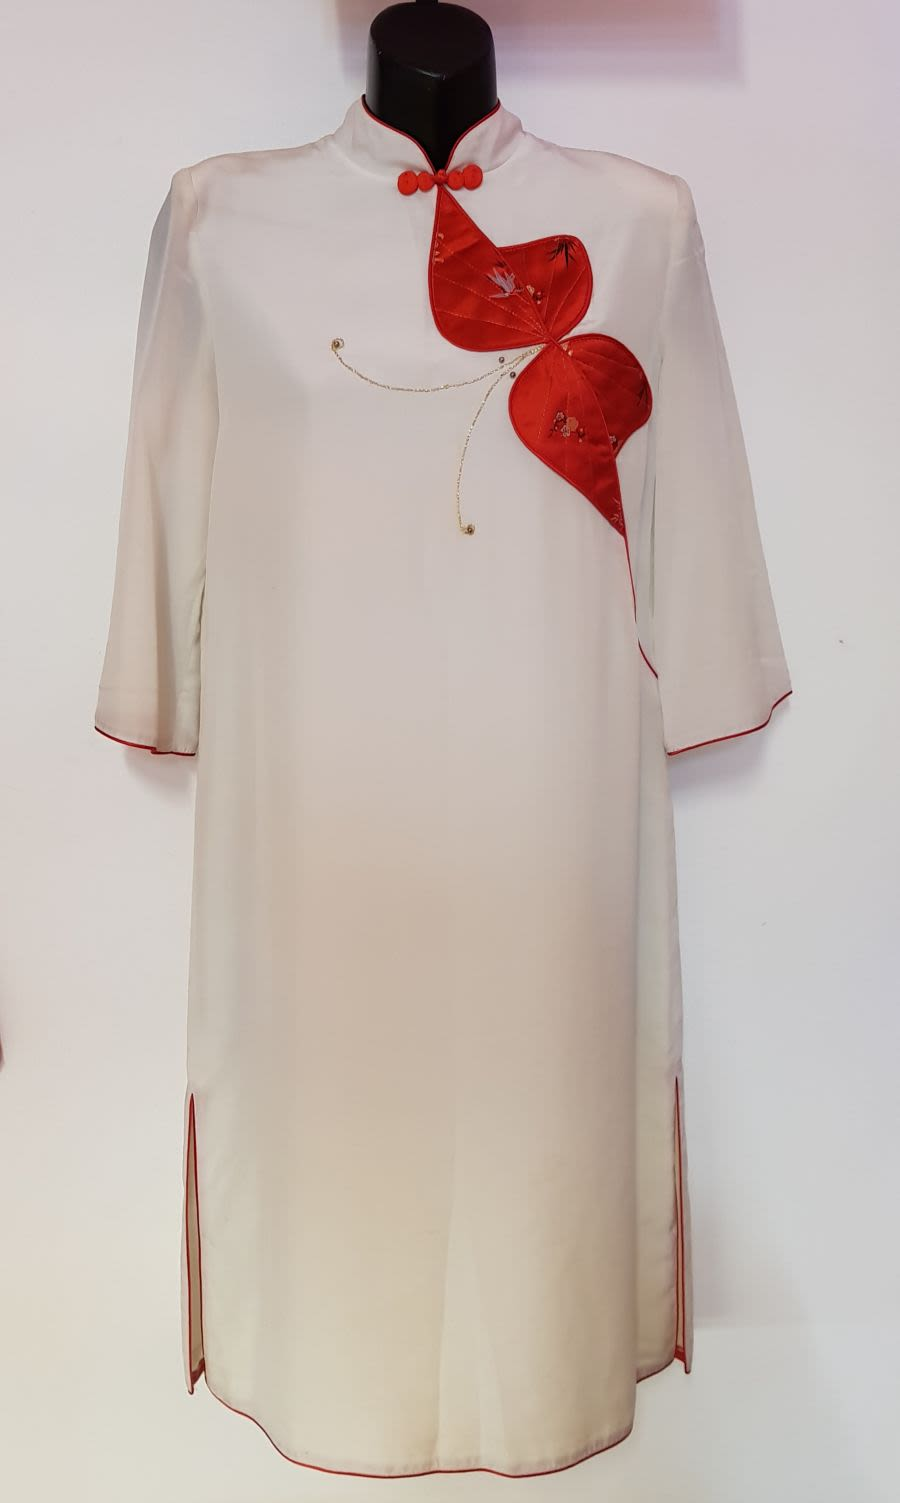 Vintage Women' 1950's style White Oriental Dress with Red Butterfly